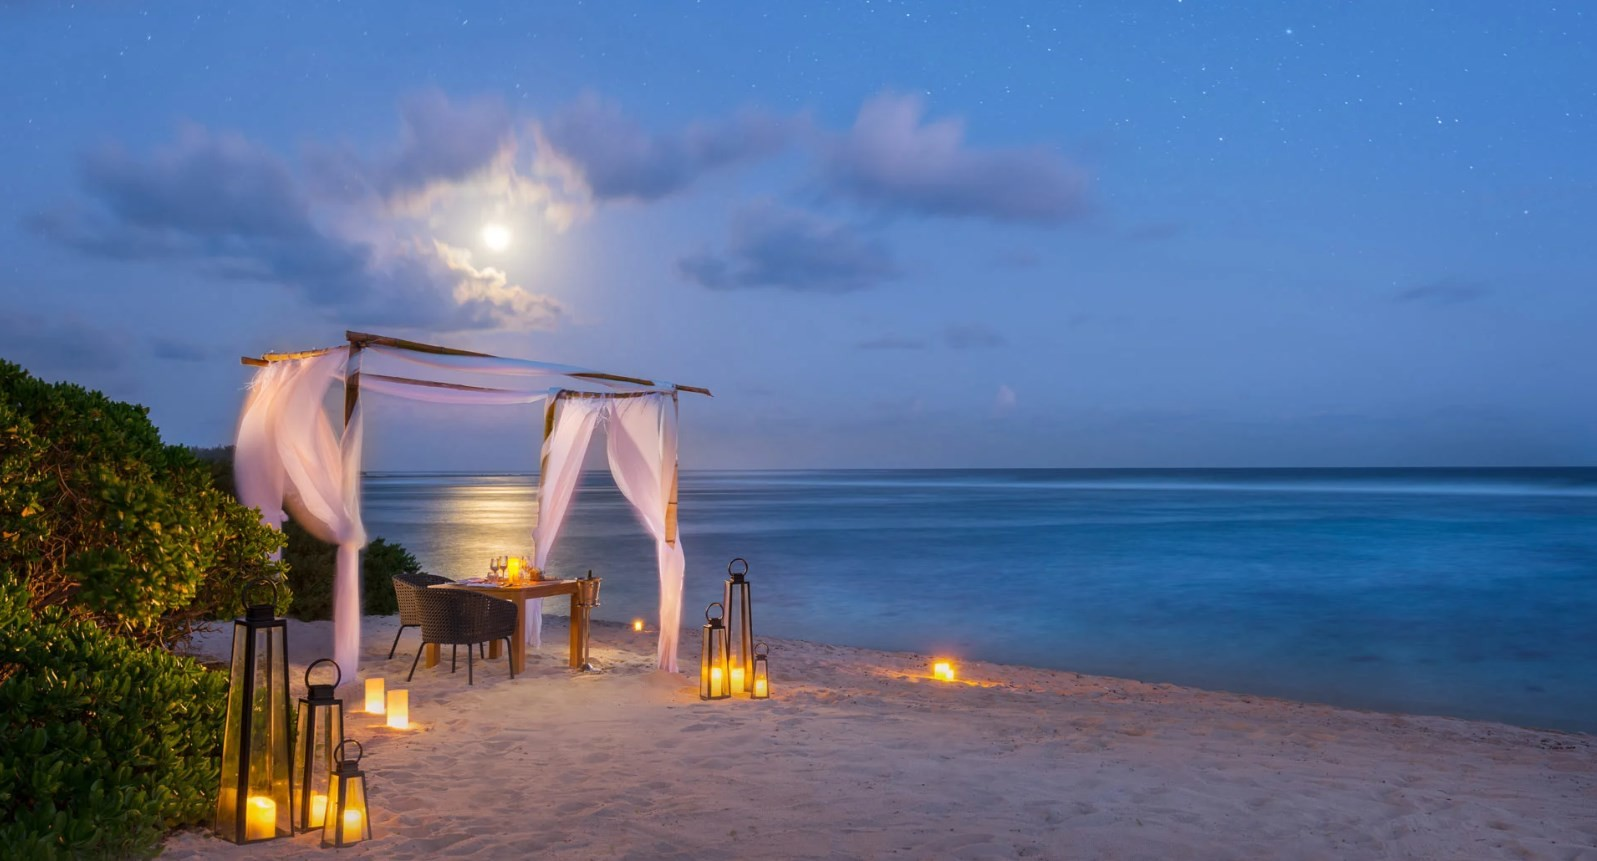 news-main-anantara-announces-extension-of-stay-with-peace-of-mind-programme-to-include-mice-facilities.1590423312.jpg